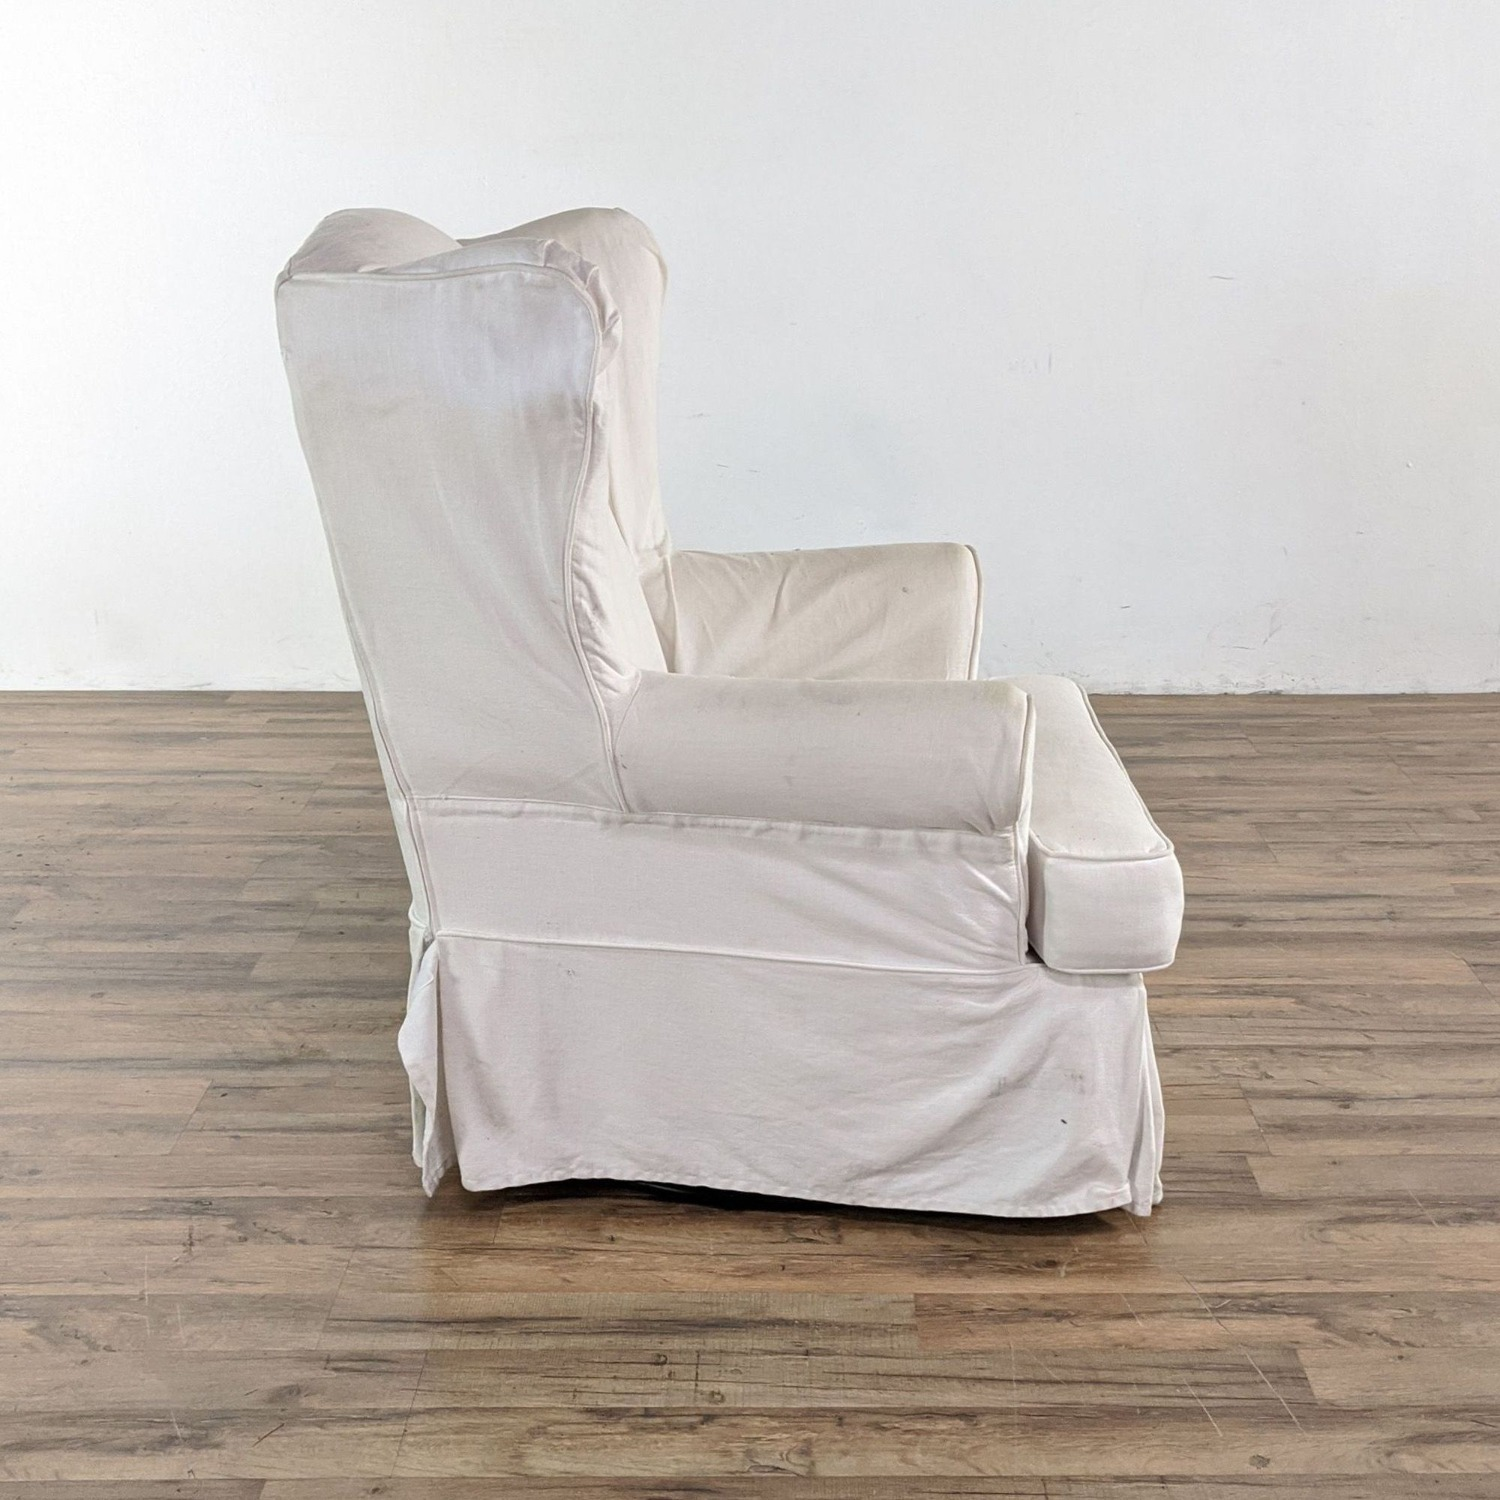 Pottery Barn Glider with Slip Cover - image-1